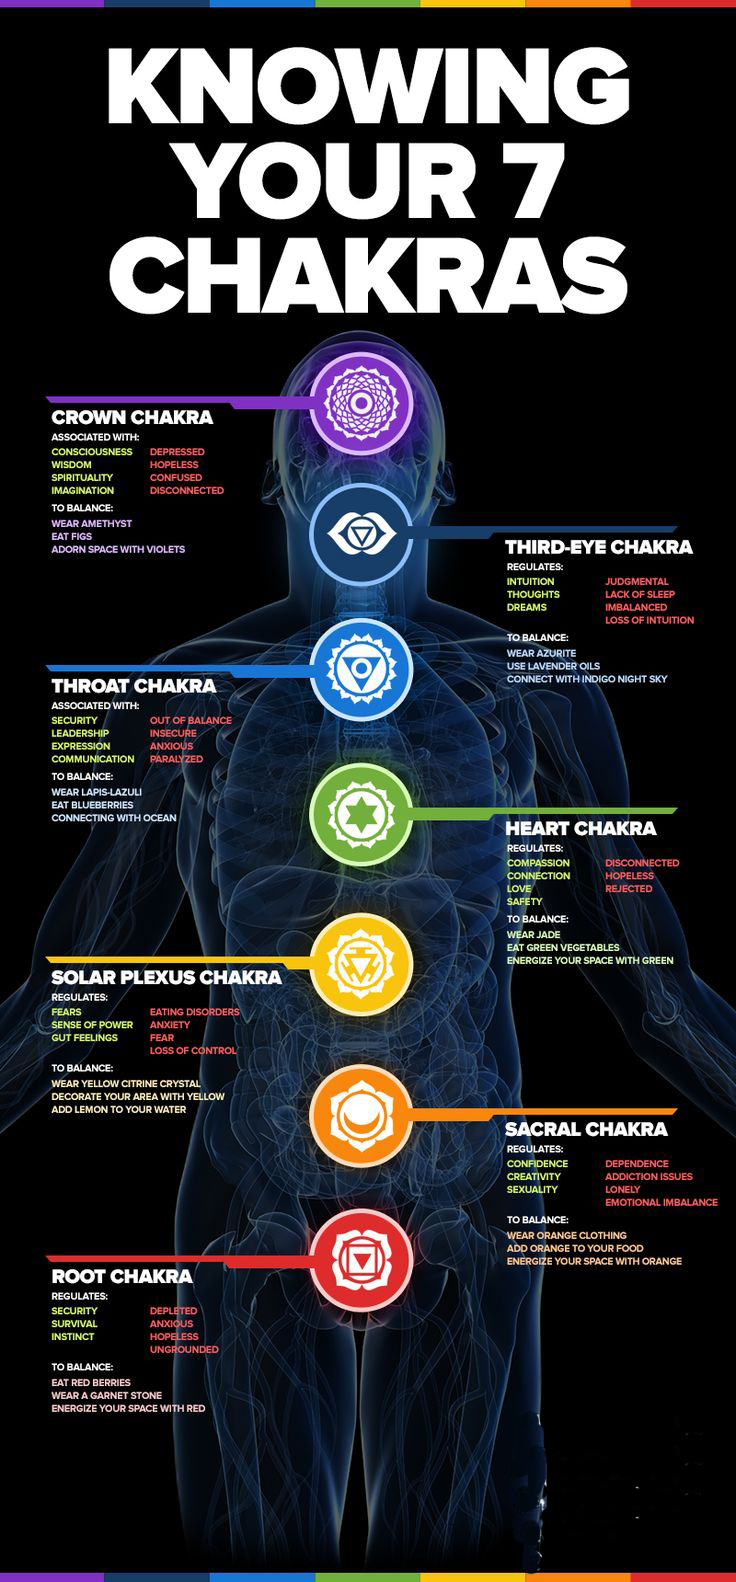 Knowing Your Chakras